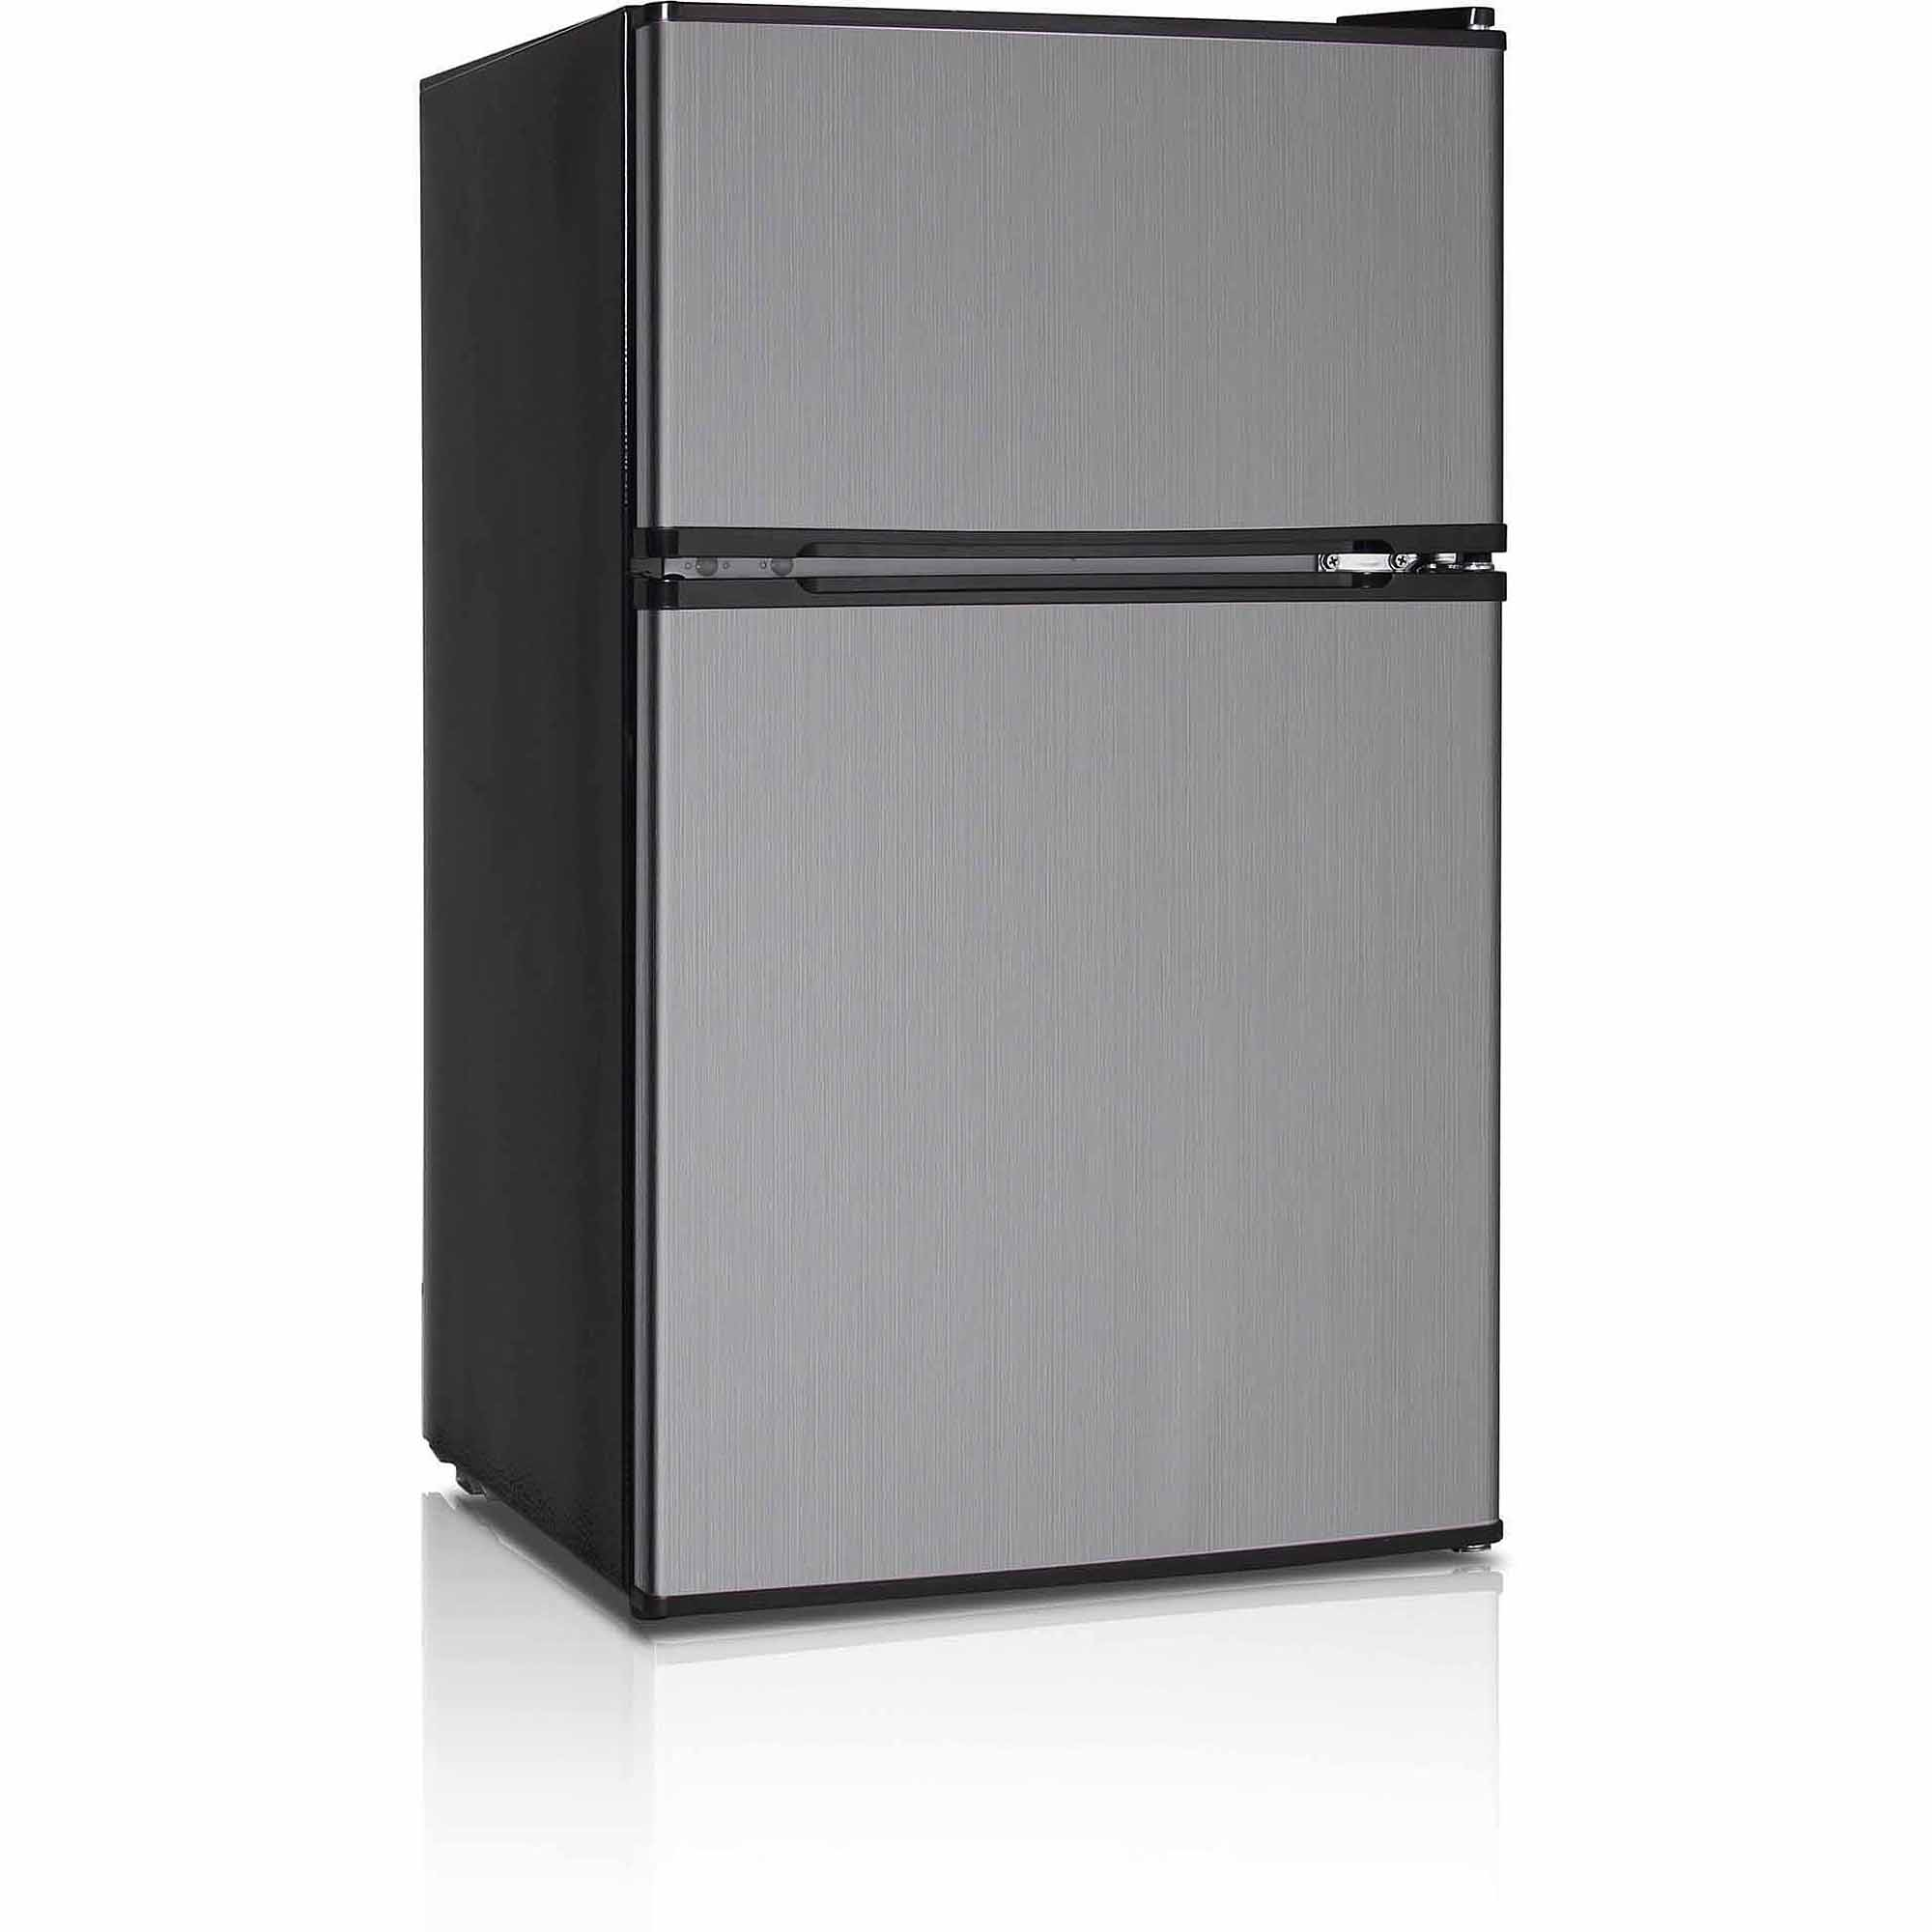 Midea 3.1 Cubic Foot Compact Refrigerator And Freezer